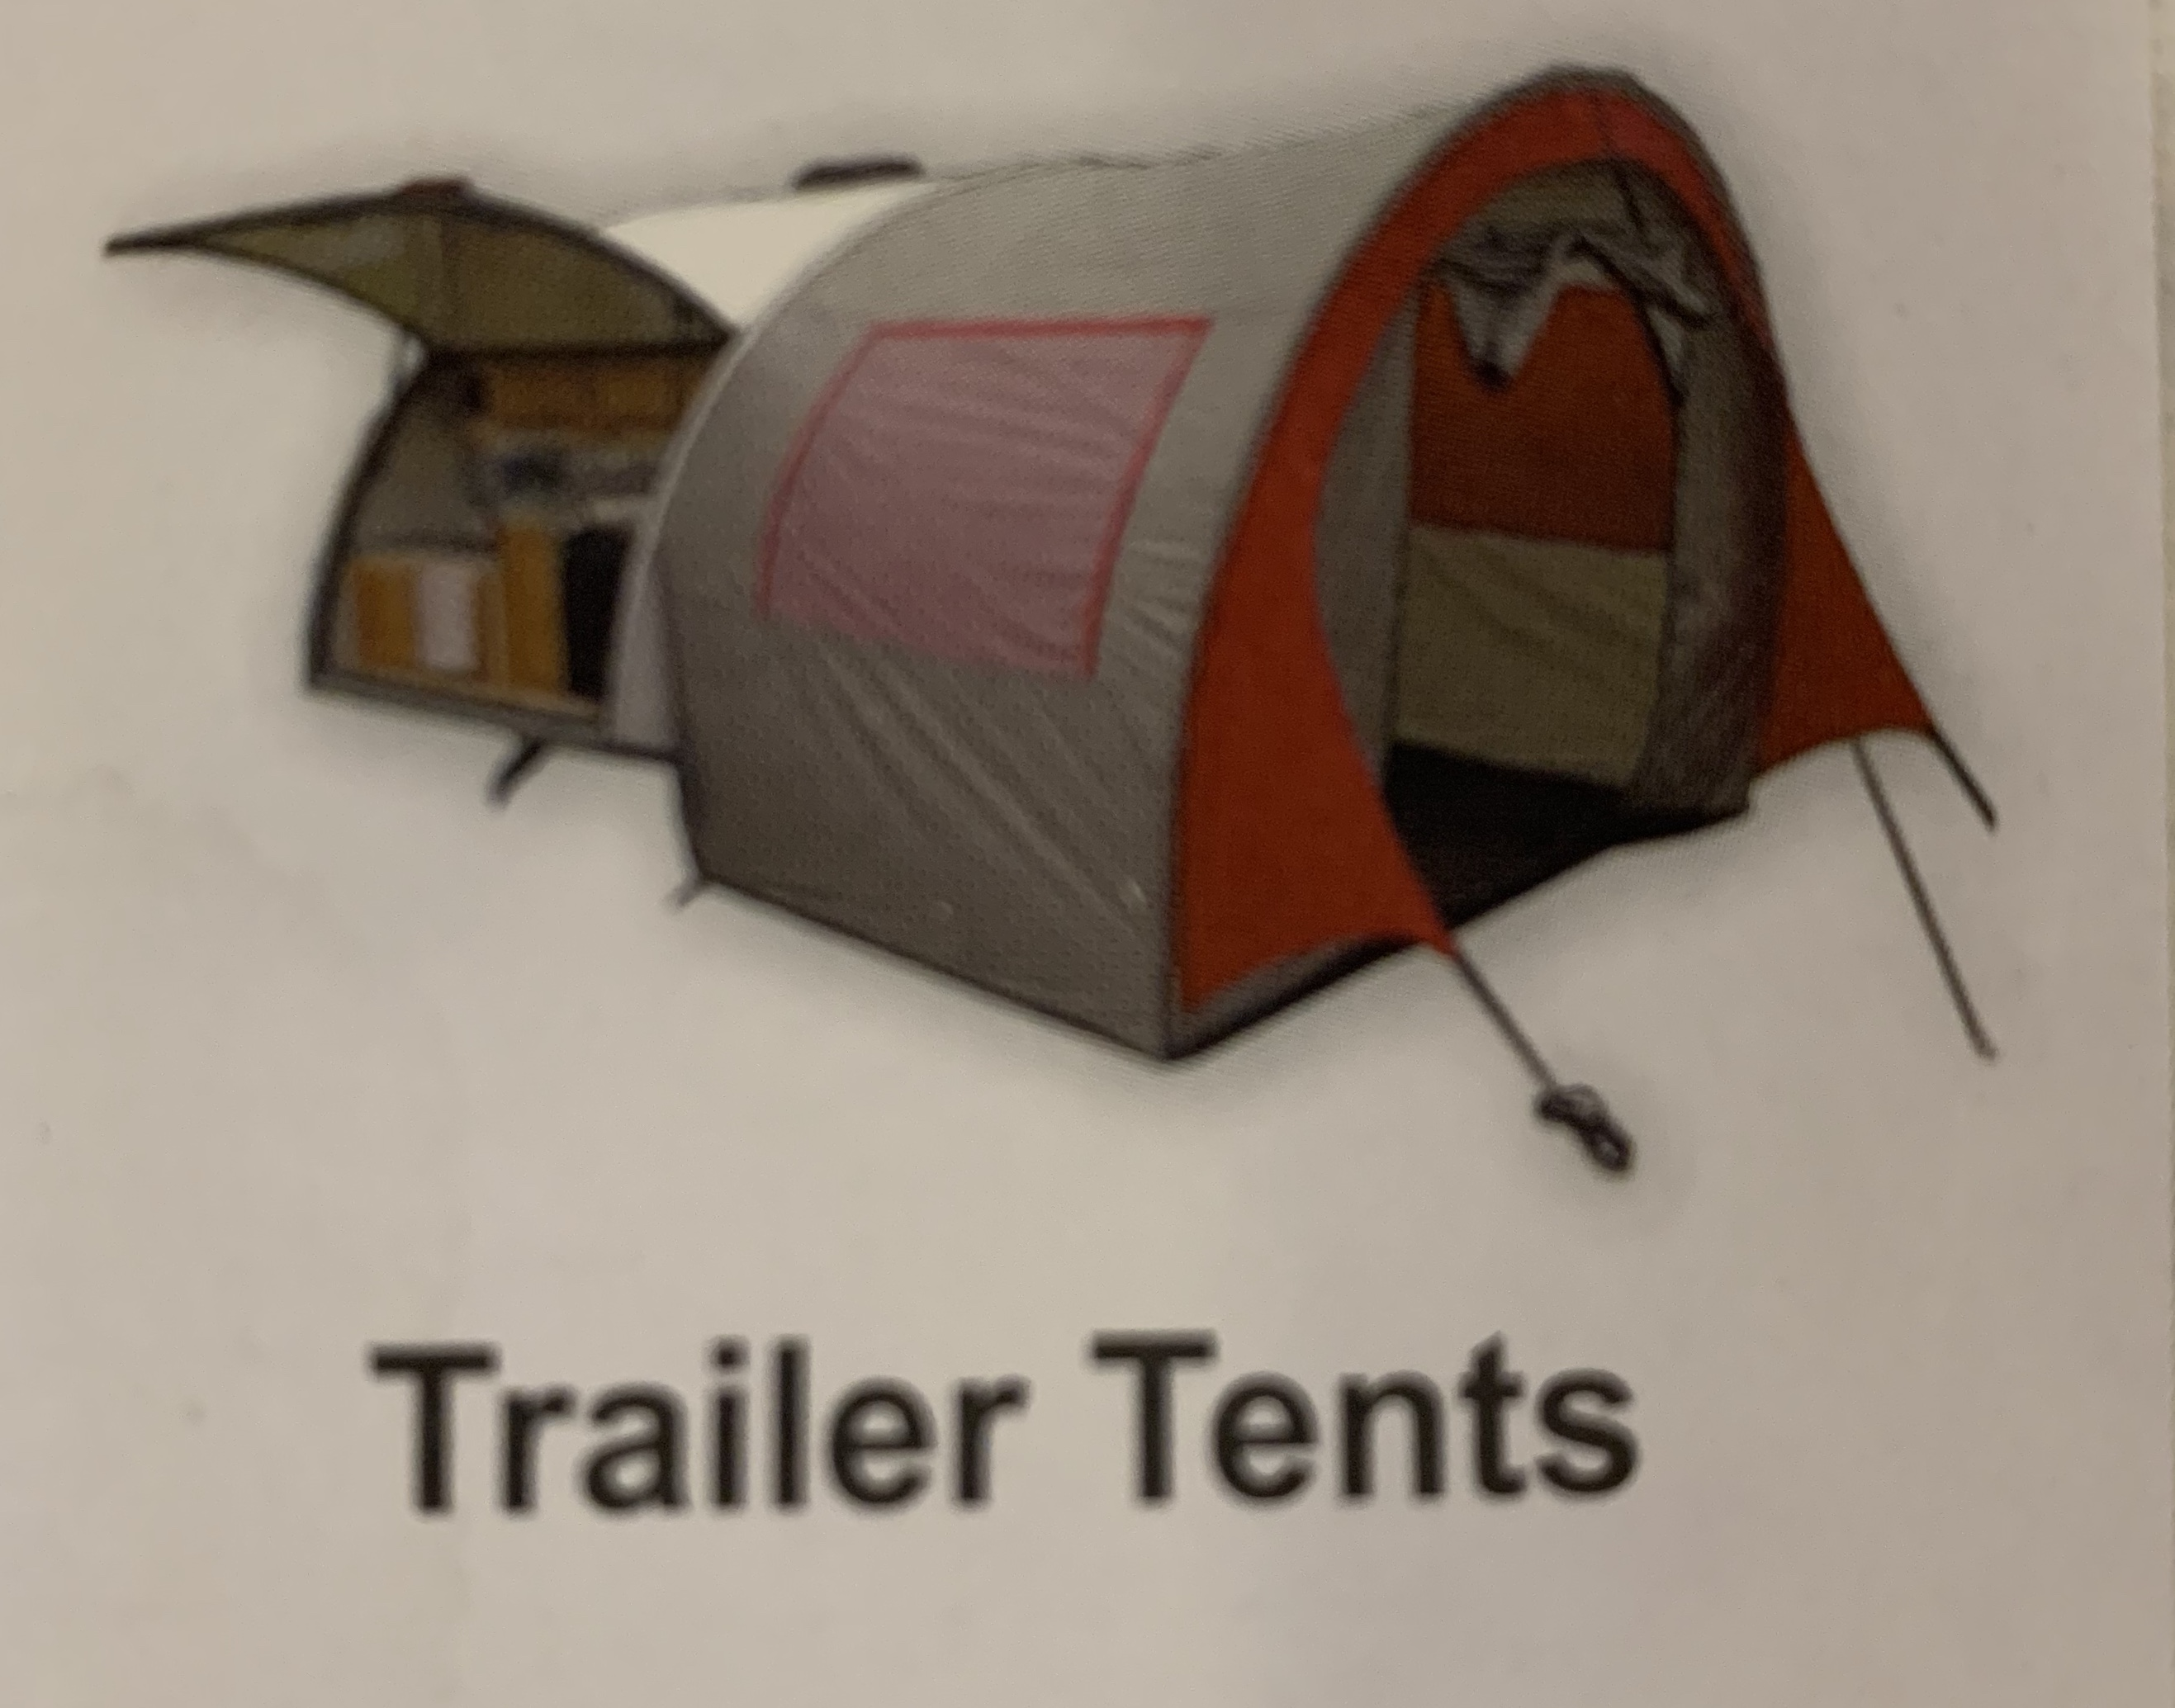 Attachable tent for extra sleeping space or privacy. T@B TQT 2008